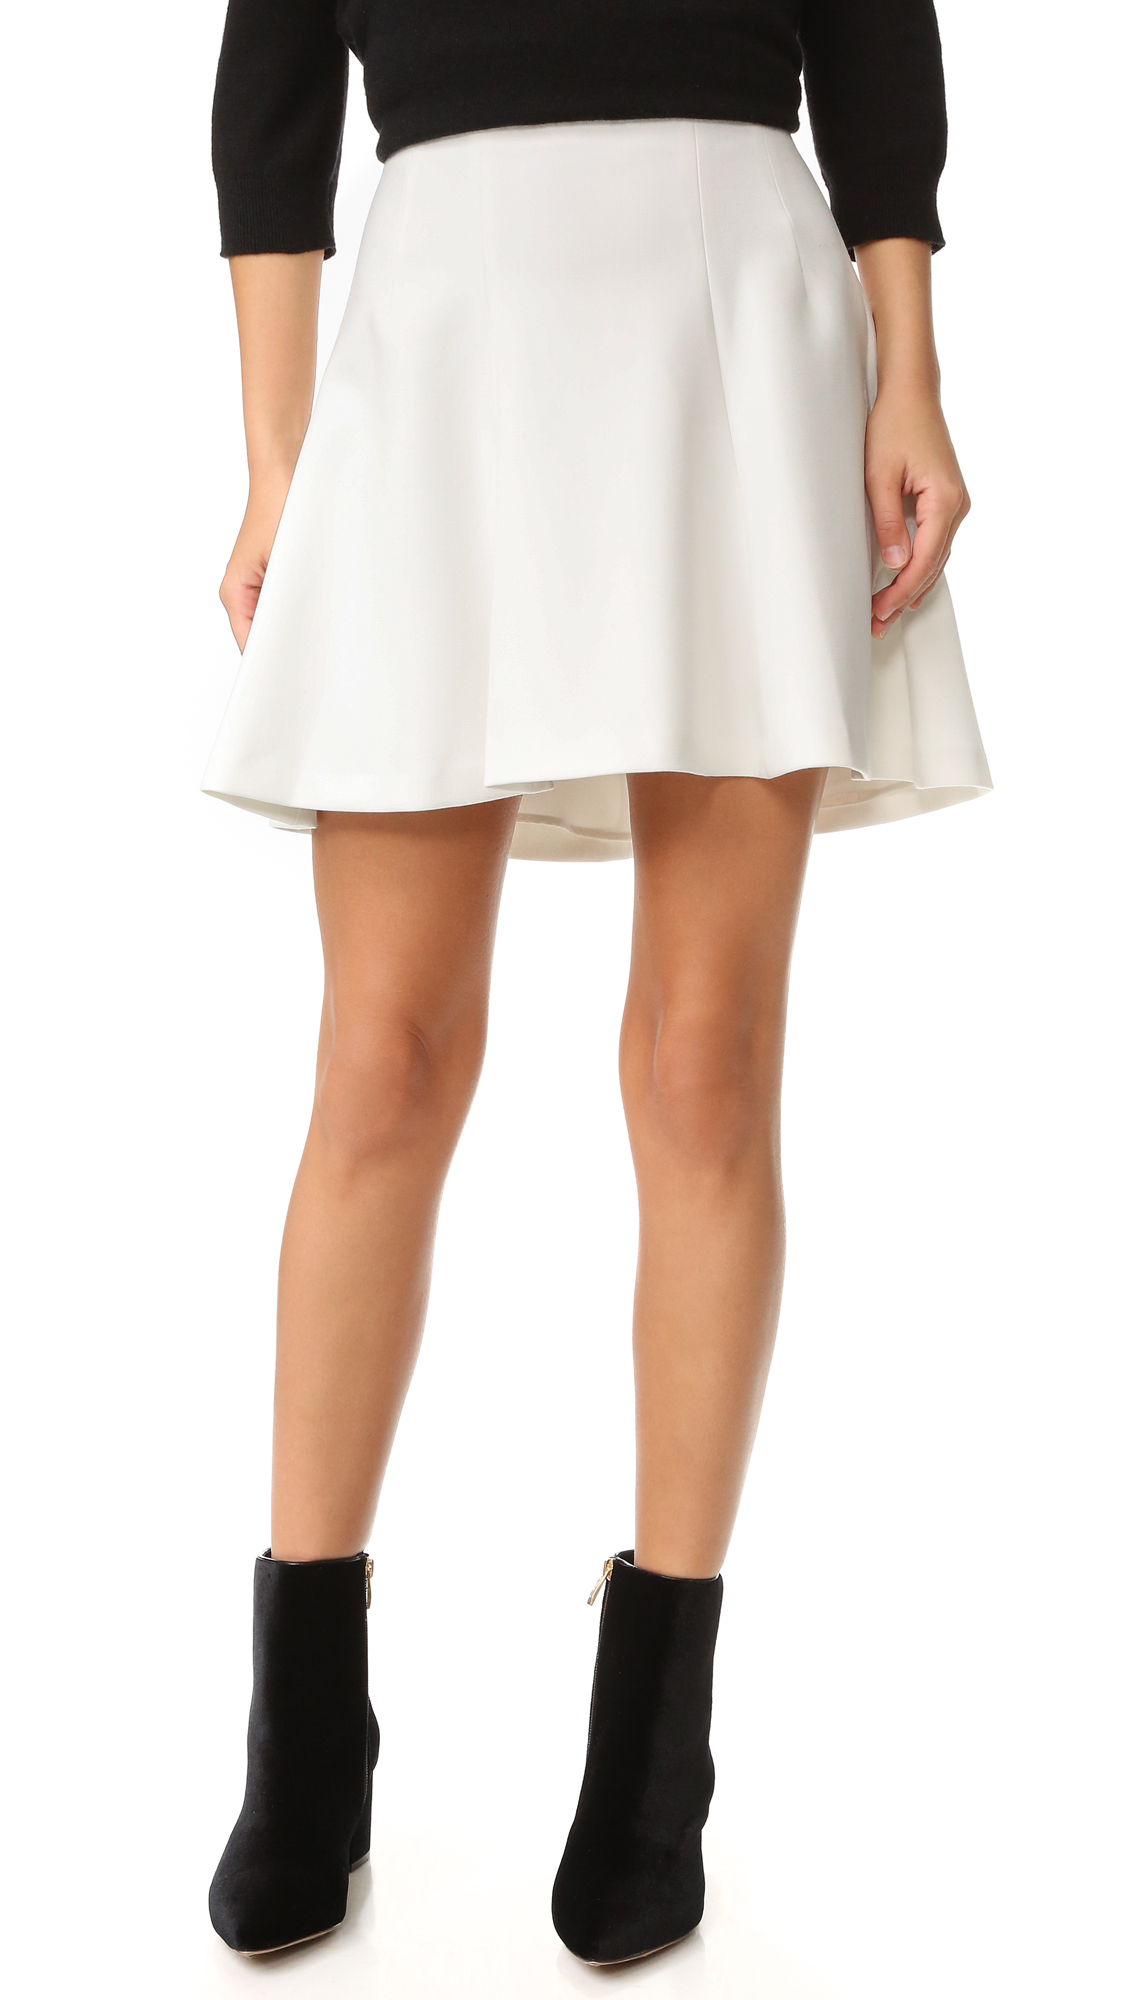 Alice + Olivia Sibel Fit & Flare Skirt - Off White